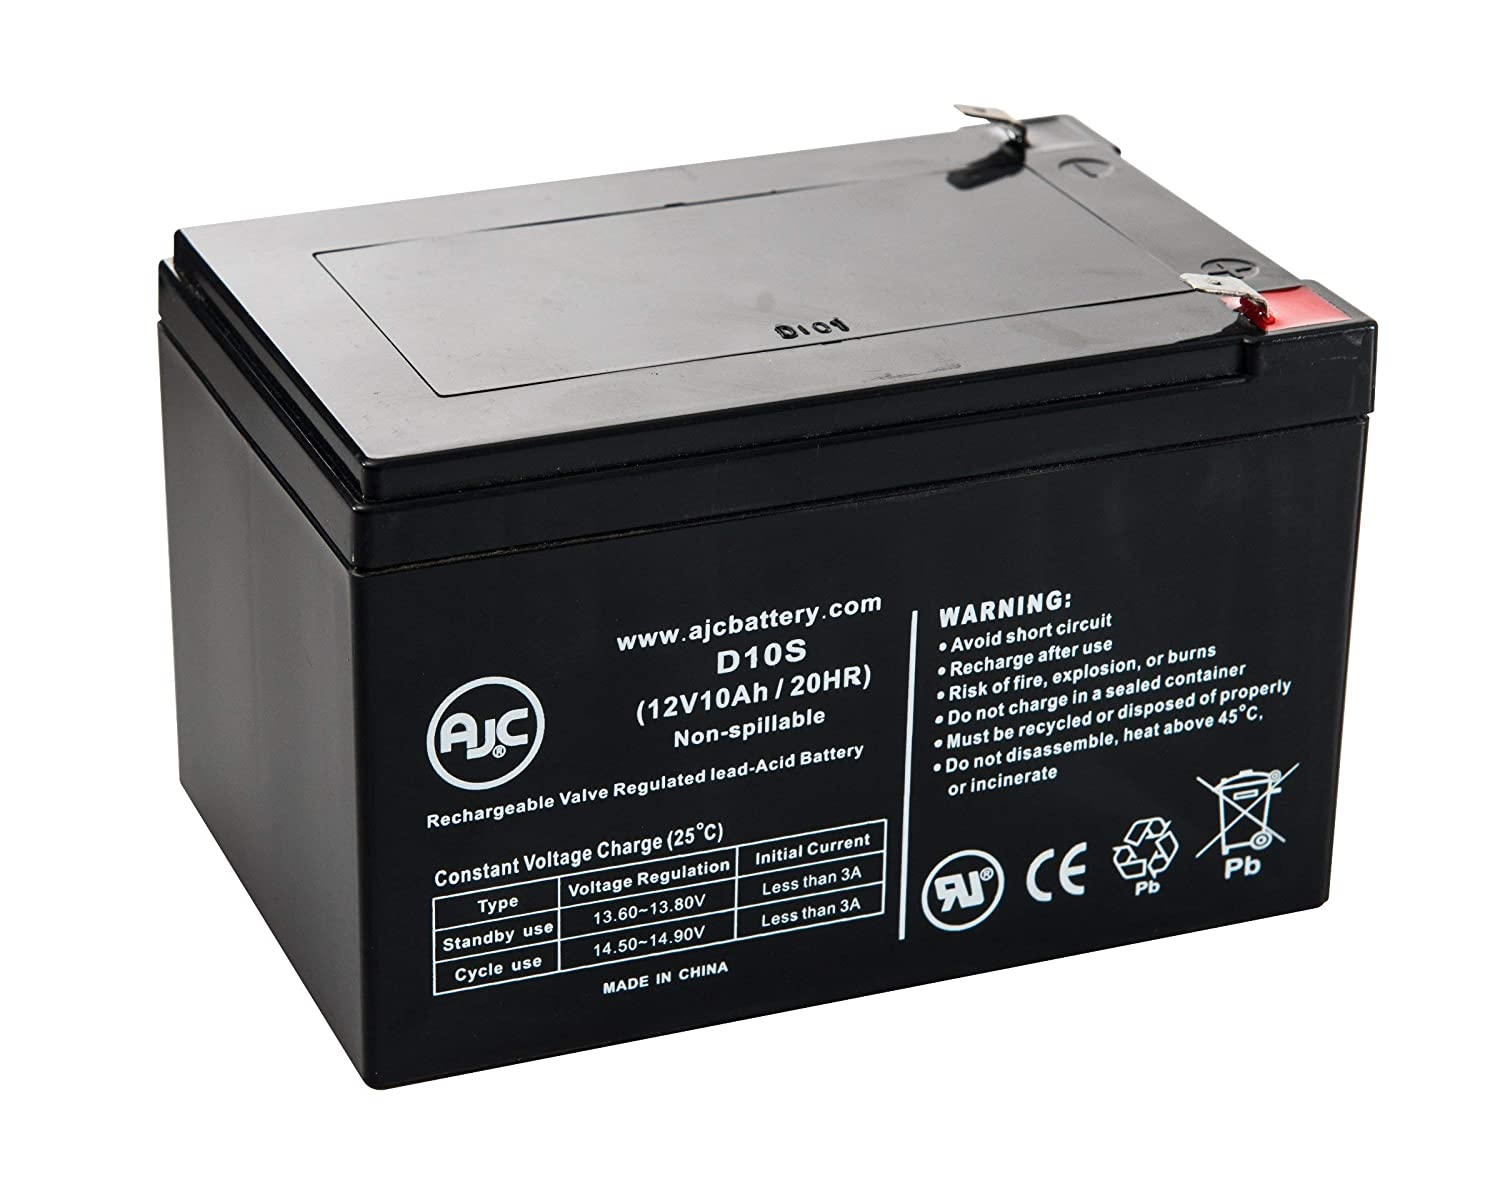 Long Way LW-6FM10 Sealed Lead Acid - AGM - VRLA Battery - This is an AJC Brand Replacement AJC Battery